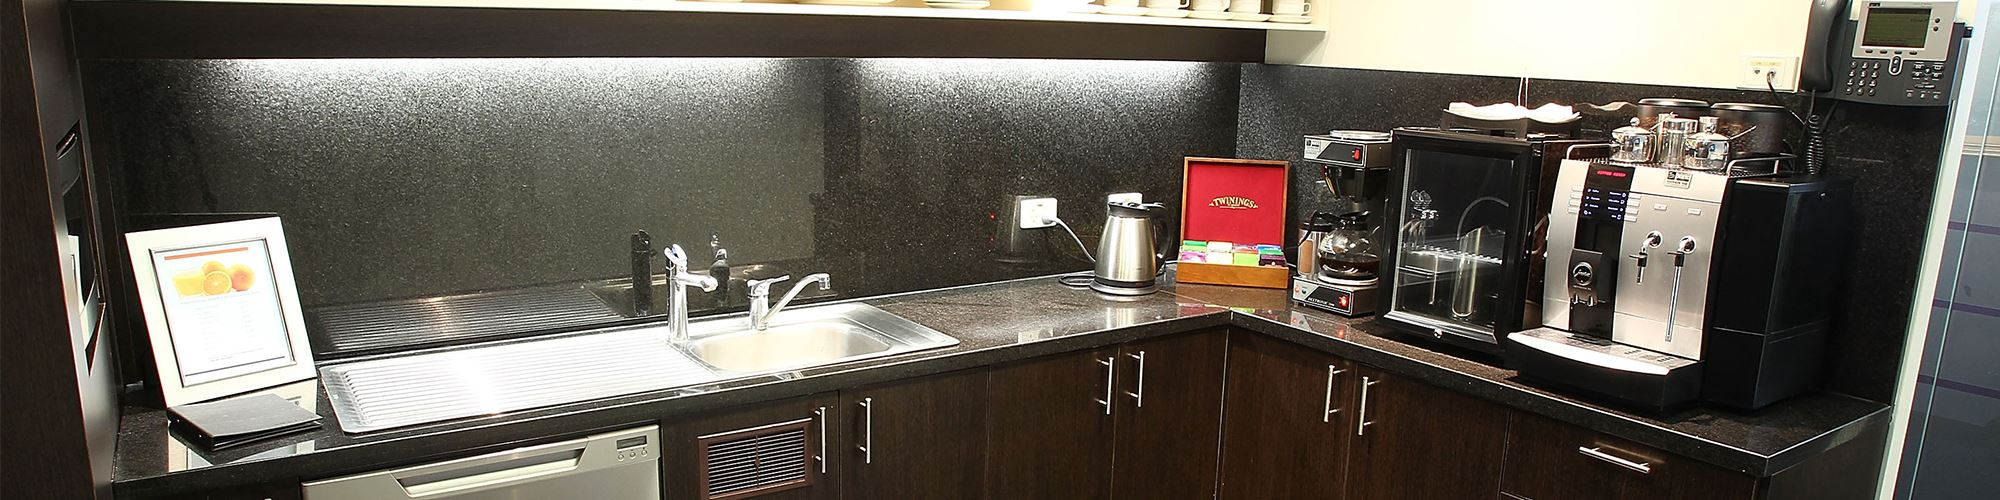 banner-140-william-street-melbourne-kitchen.jpg